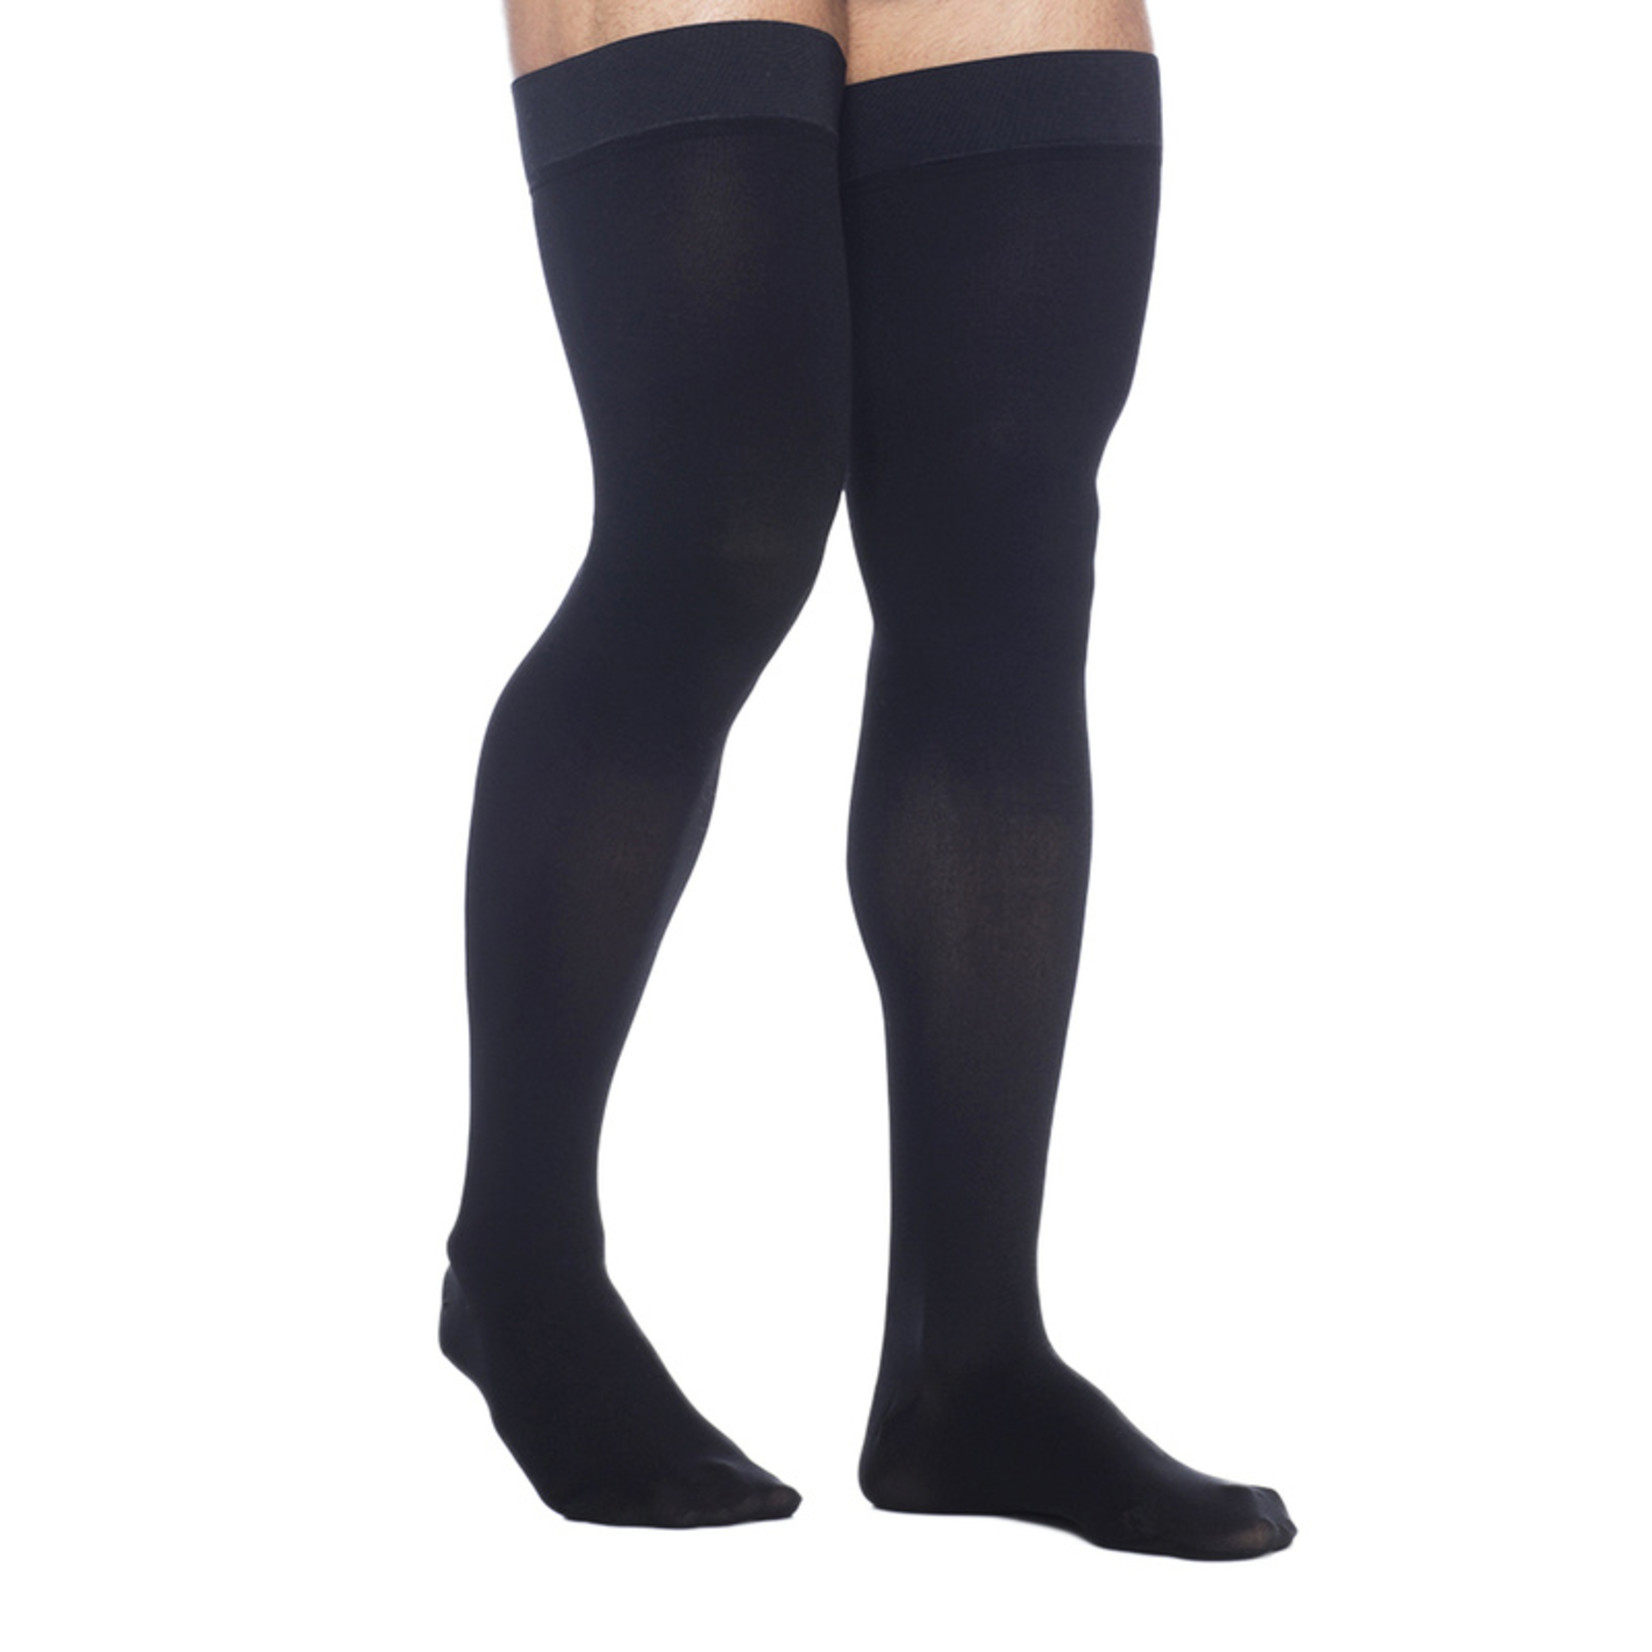 SIGVARIS Men's DYNAVEN Thigh-High 30-40mmHg